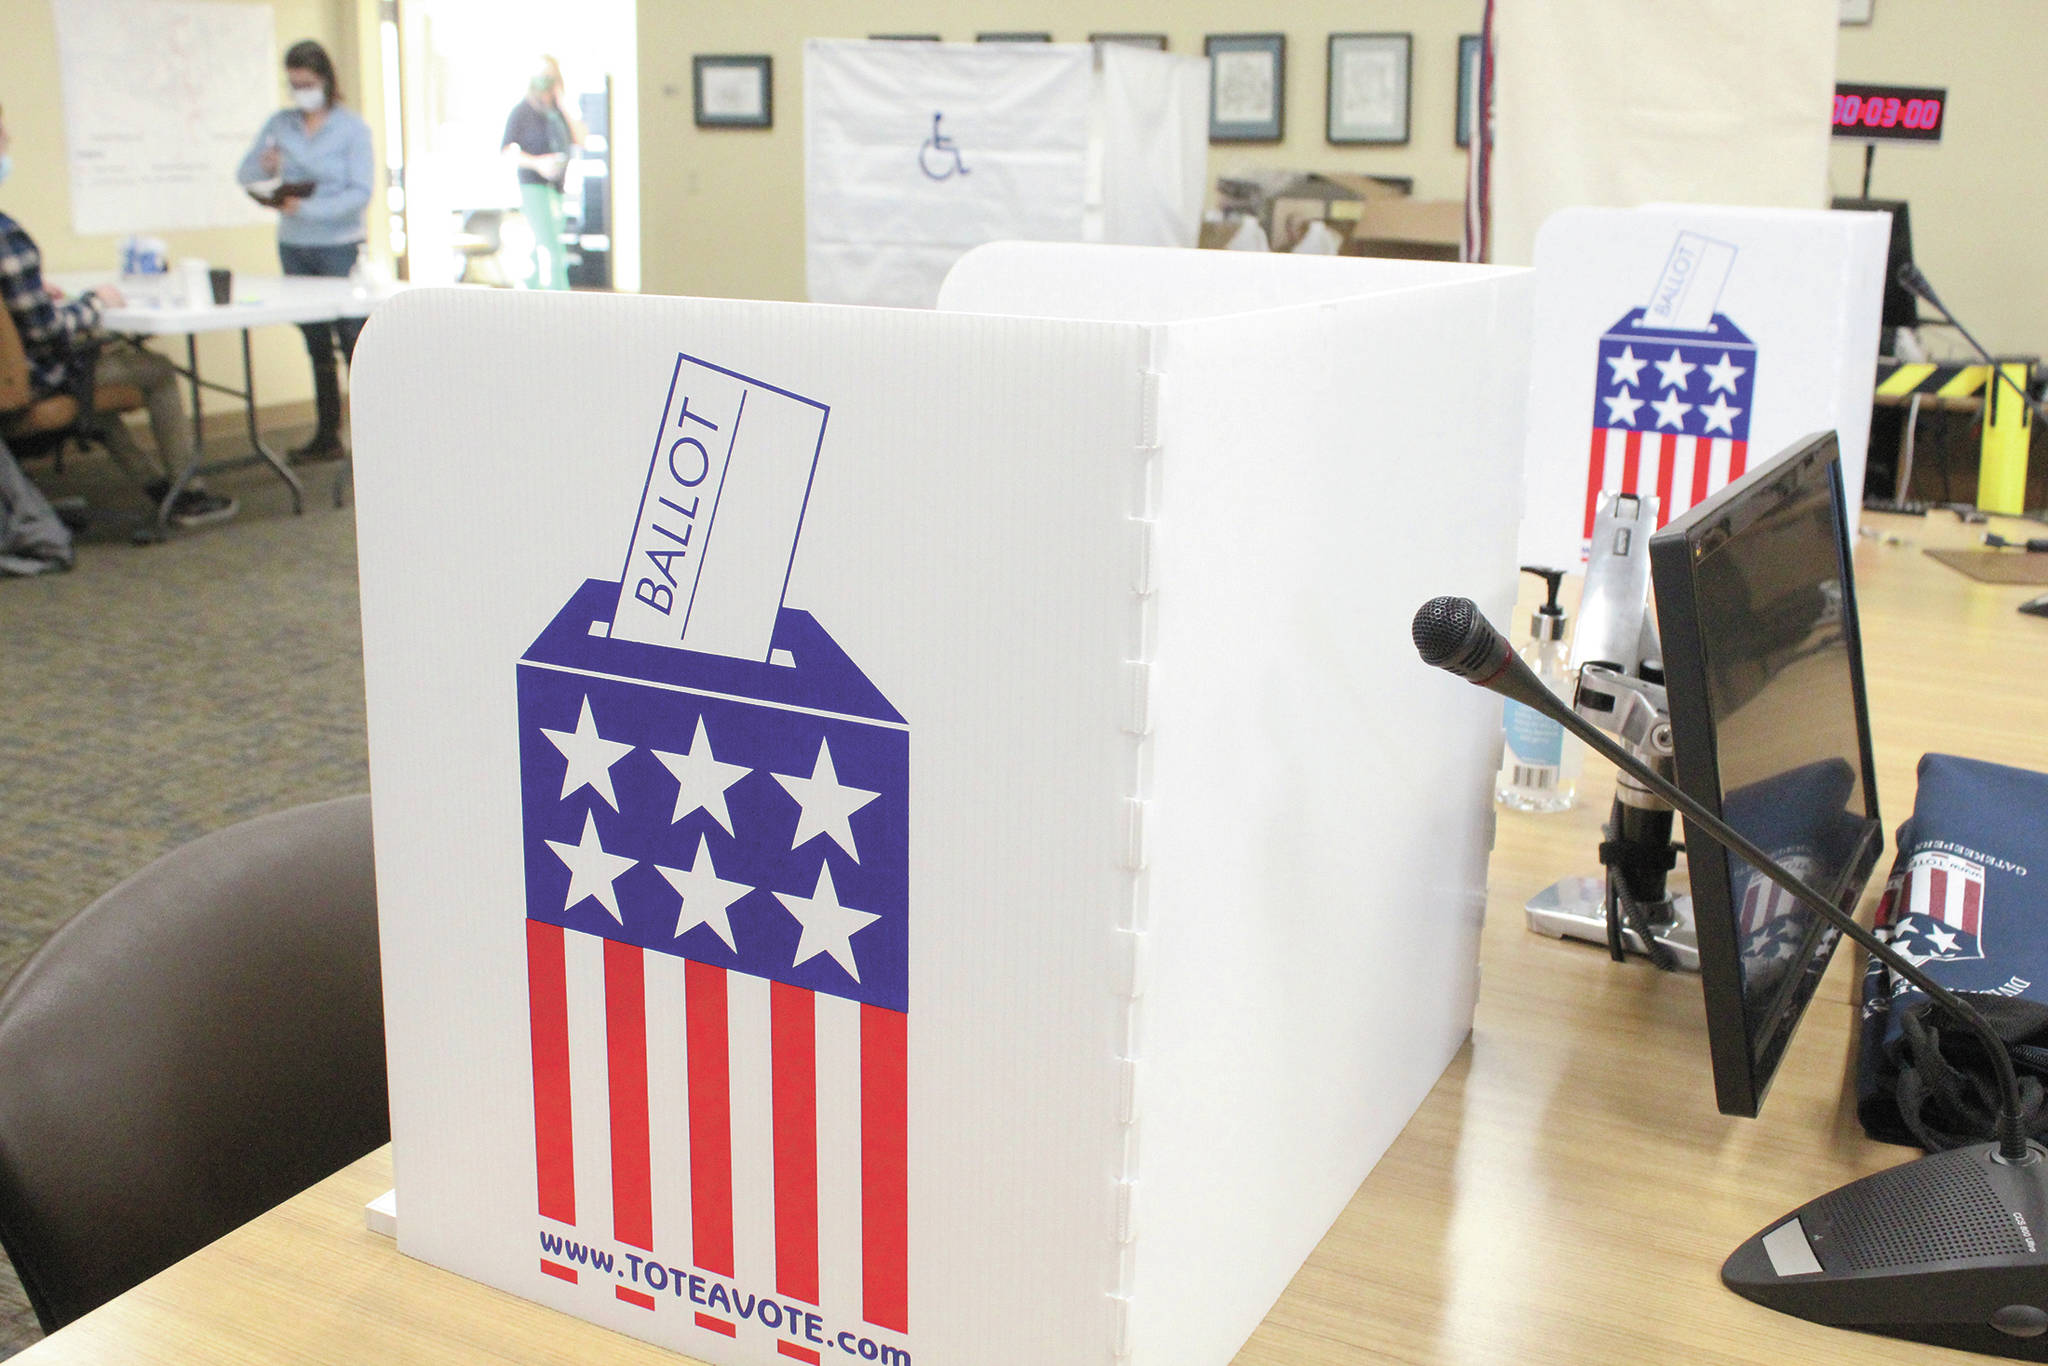 Voting stations sit ready in Homer City Hall during the regular municipal election Tuesday, Oct. 6, 2020 in Homer, Alaska. (Photo by Megan Pacer/Homer News)